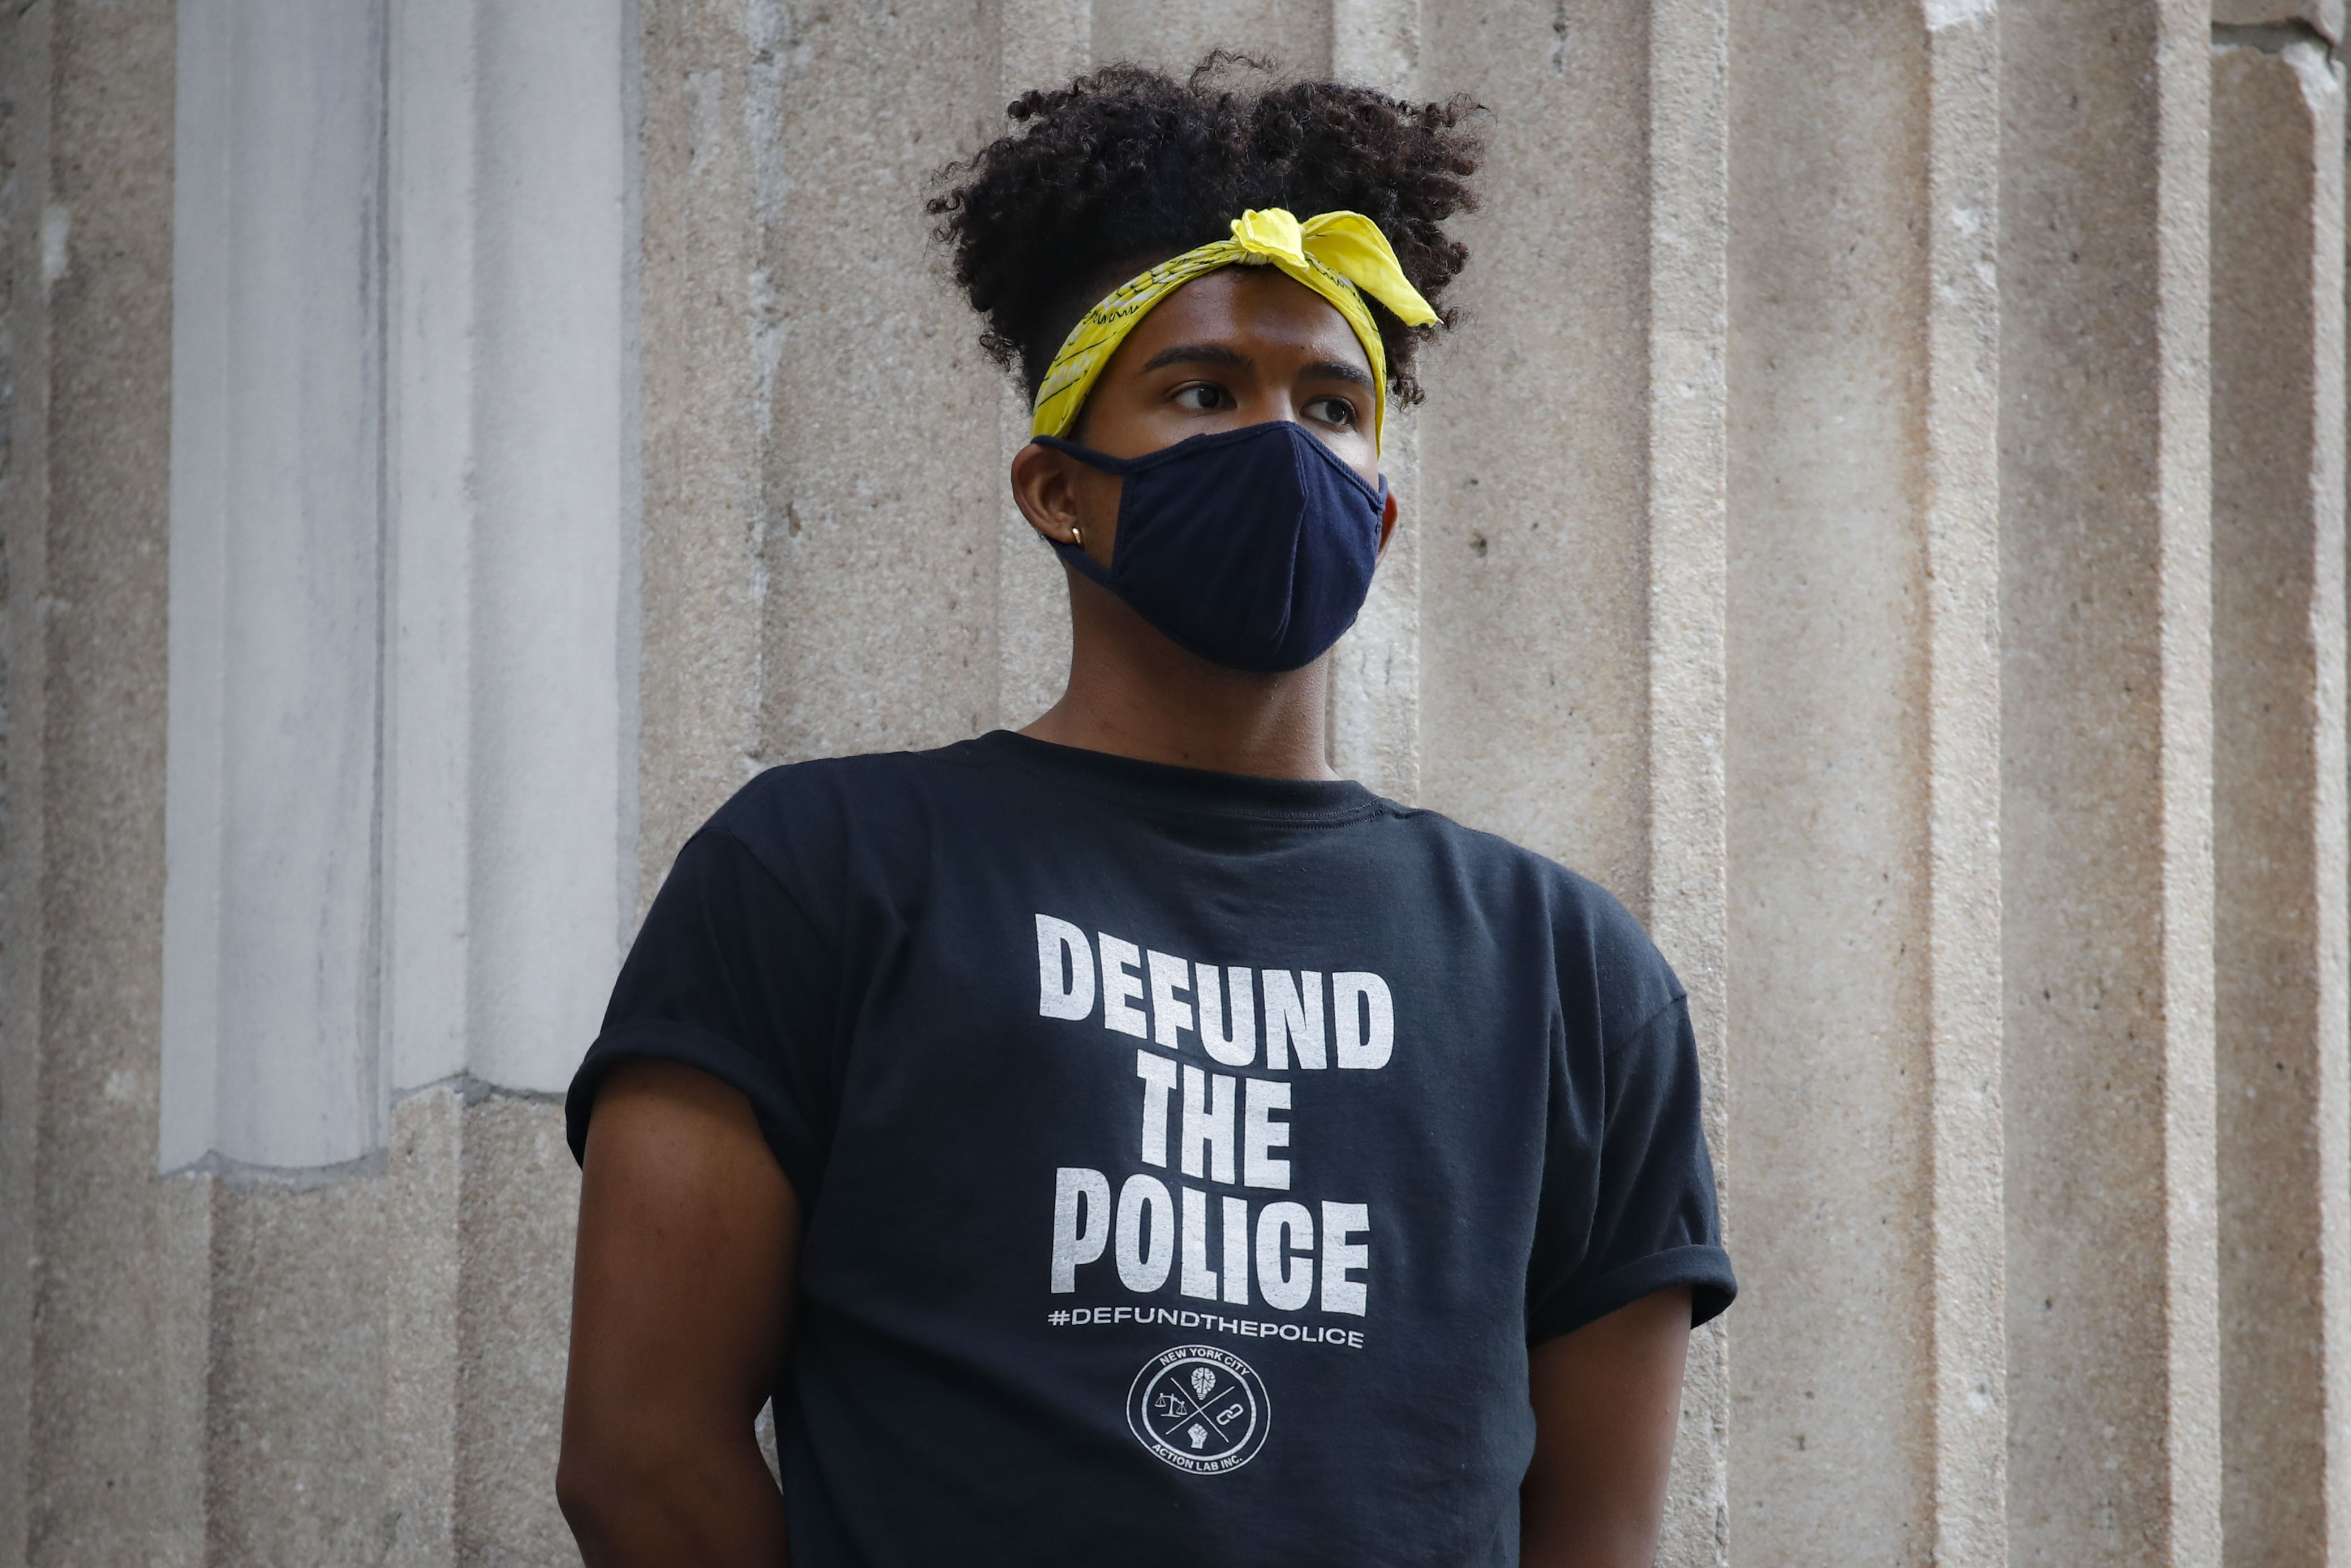 A protester stands on the steps of a government building near an encampment outside City Hall in New York on June 30, 2020.